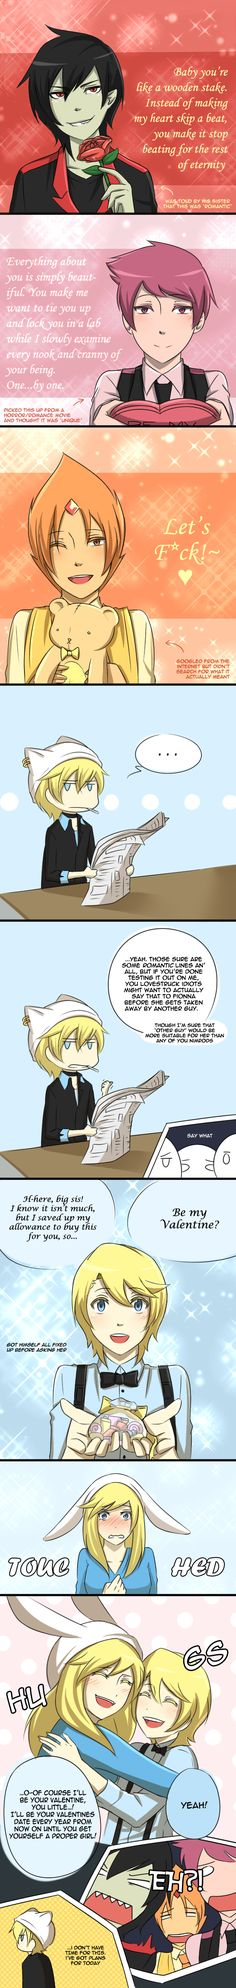 Awww how sweet except for what flame prince said...0////0. Really cute... ~Fionna The Human